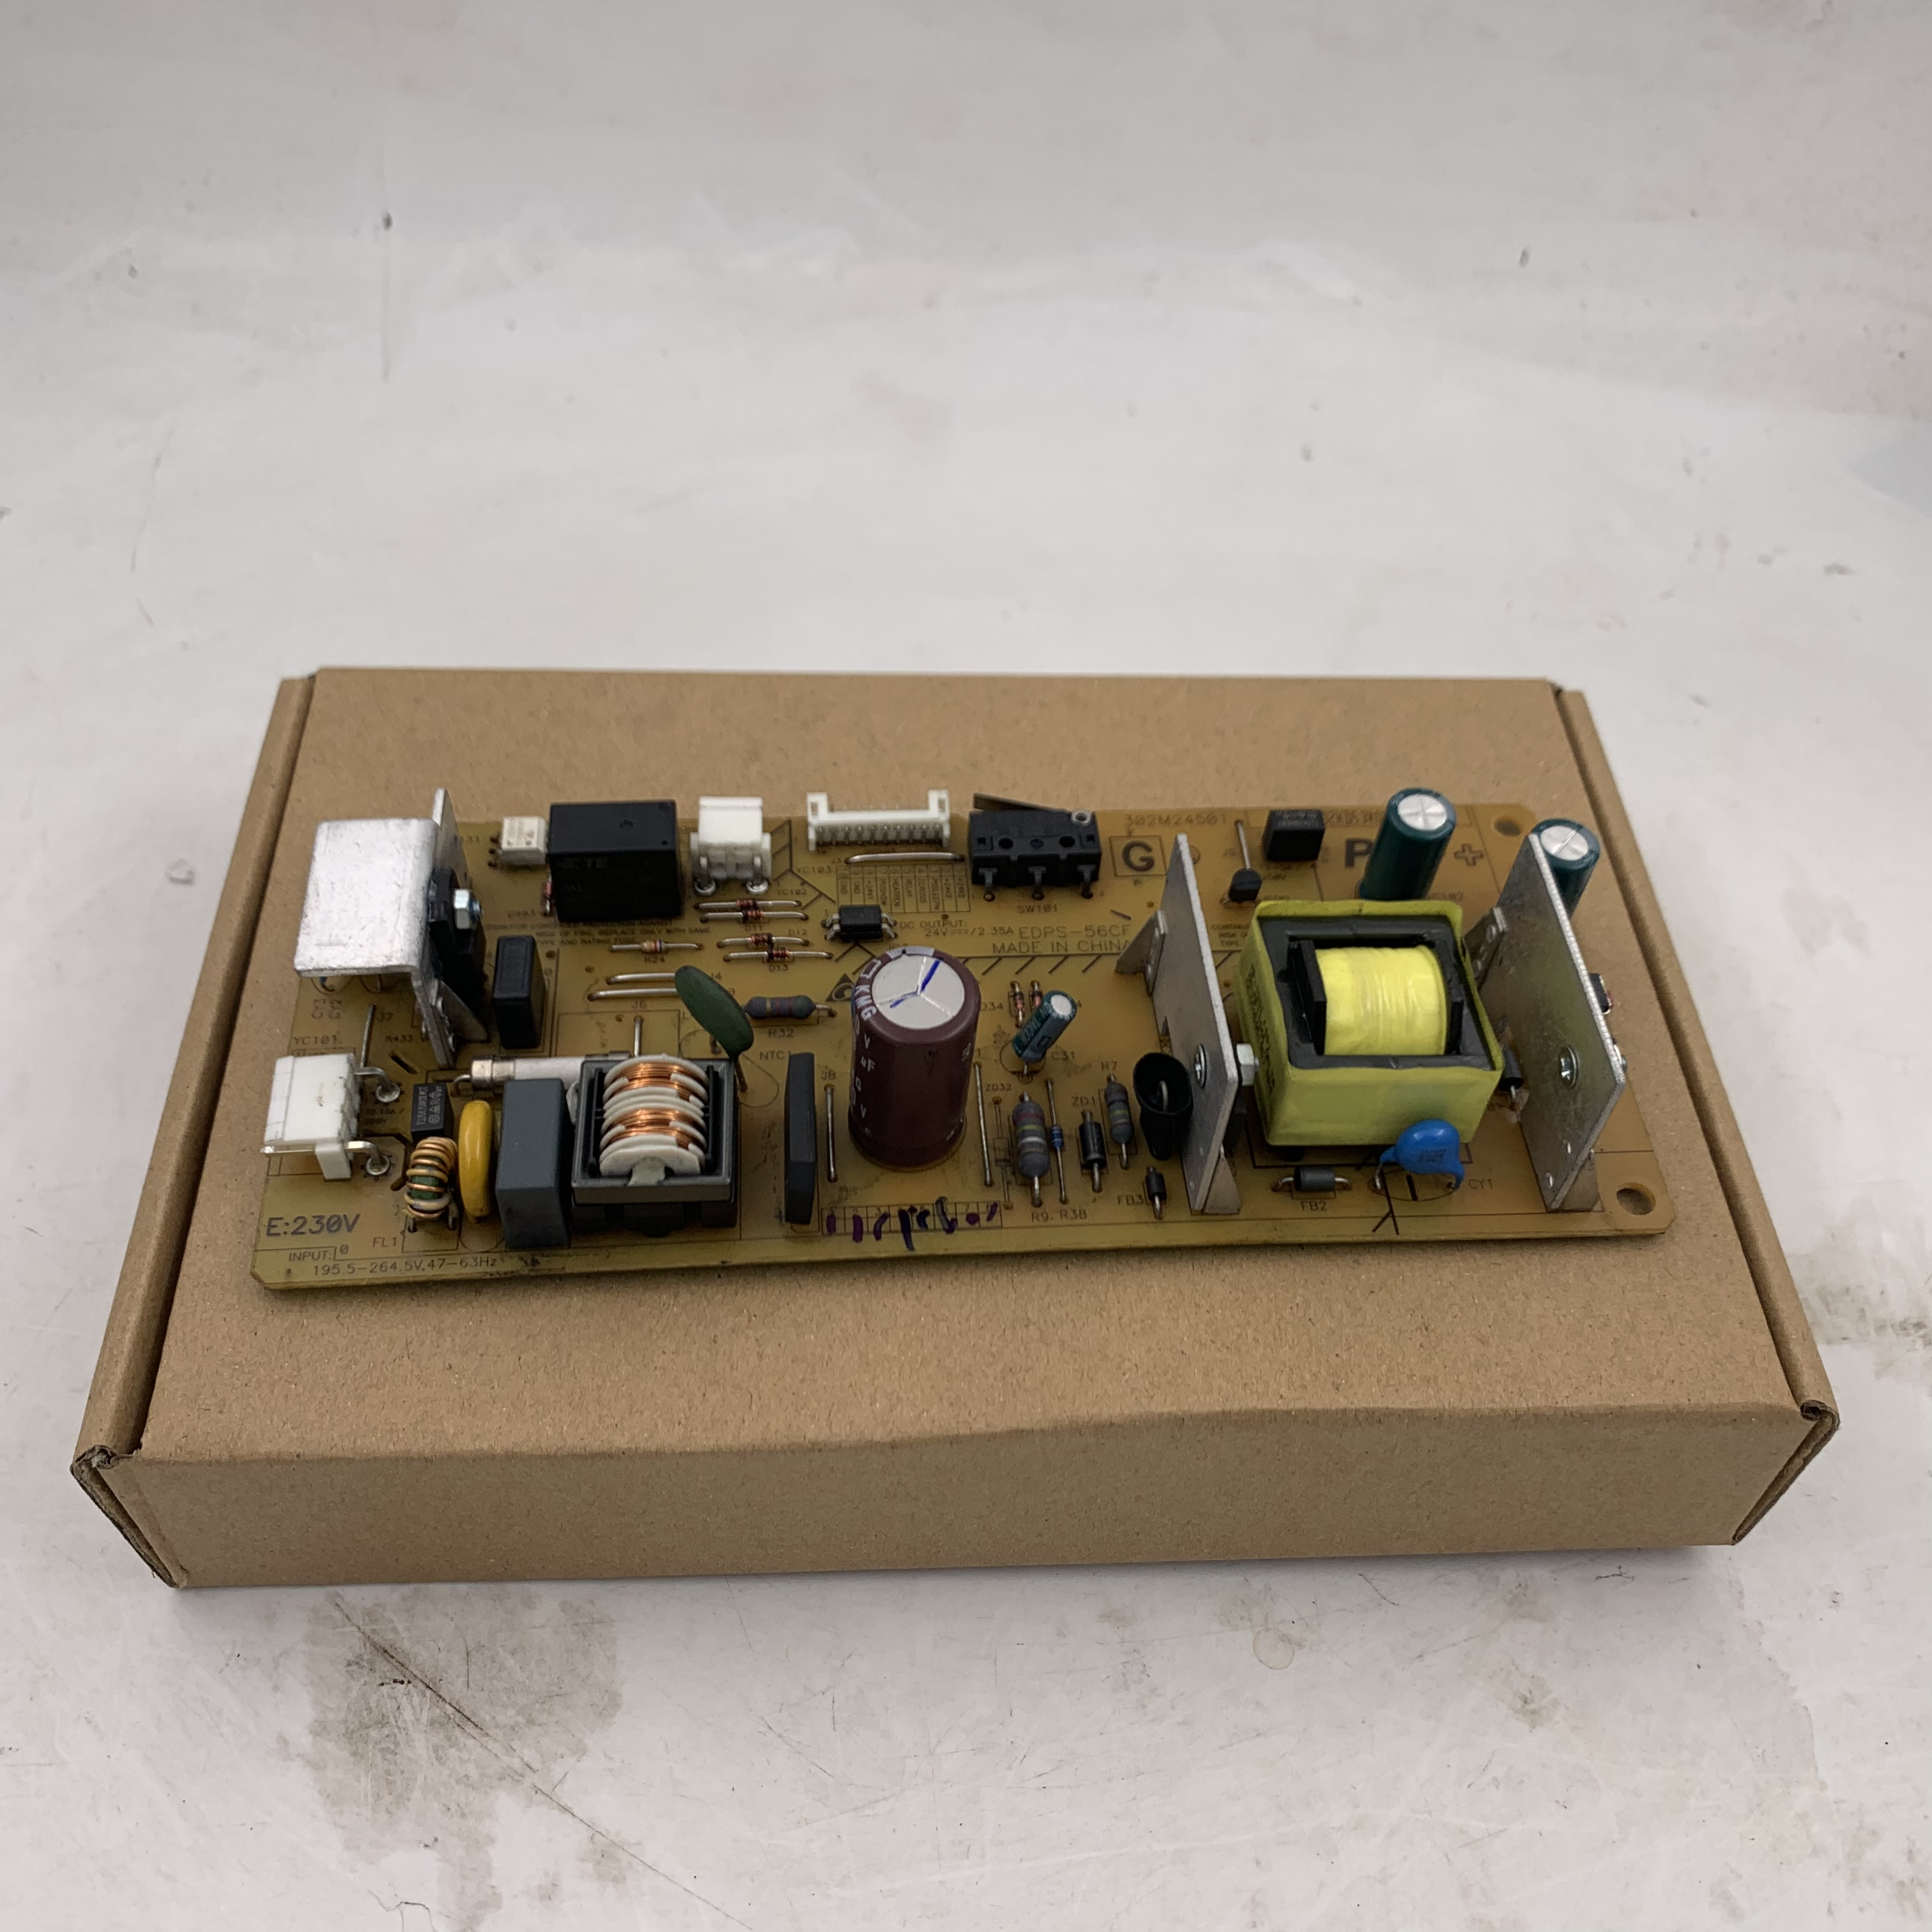 Power Board / Parts Switching Regulator For <font><b>Kyocera</b></font> <font><b>FS</b></font> 1020MFP 1025MFP 1120MFP <font><b>1125MFP</b></font> 1220MFP 1320MFP 1325MFP 1040 1041 1060Dn image